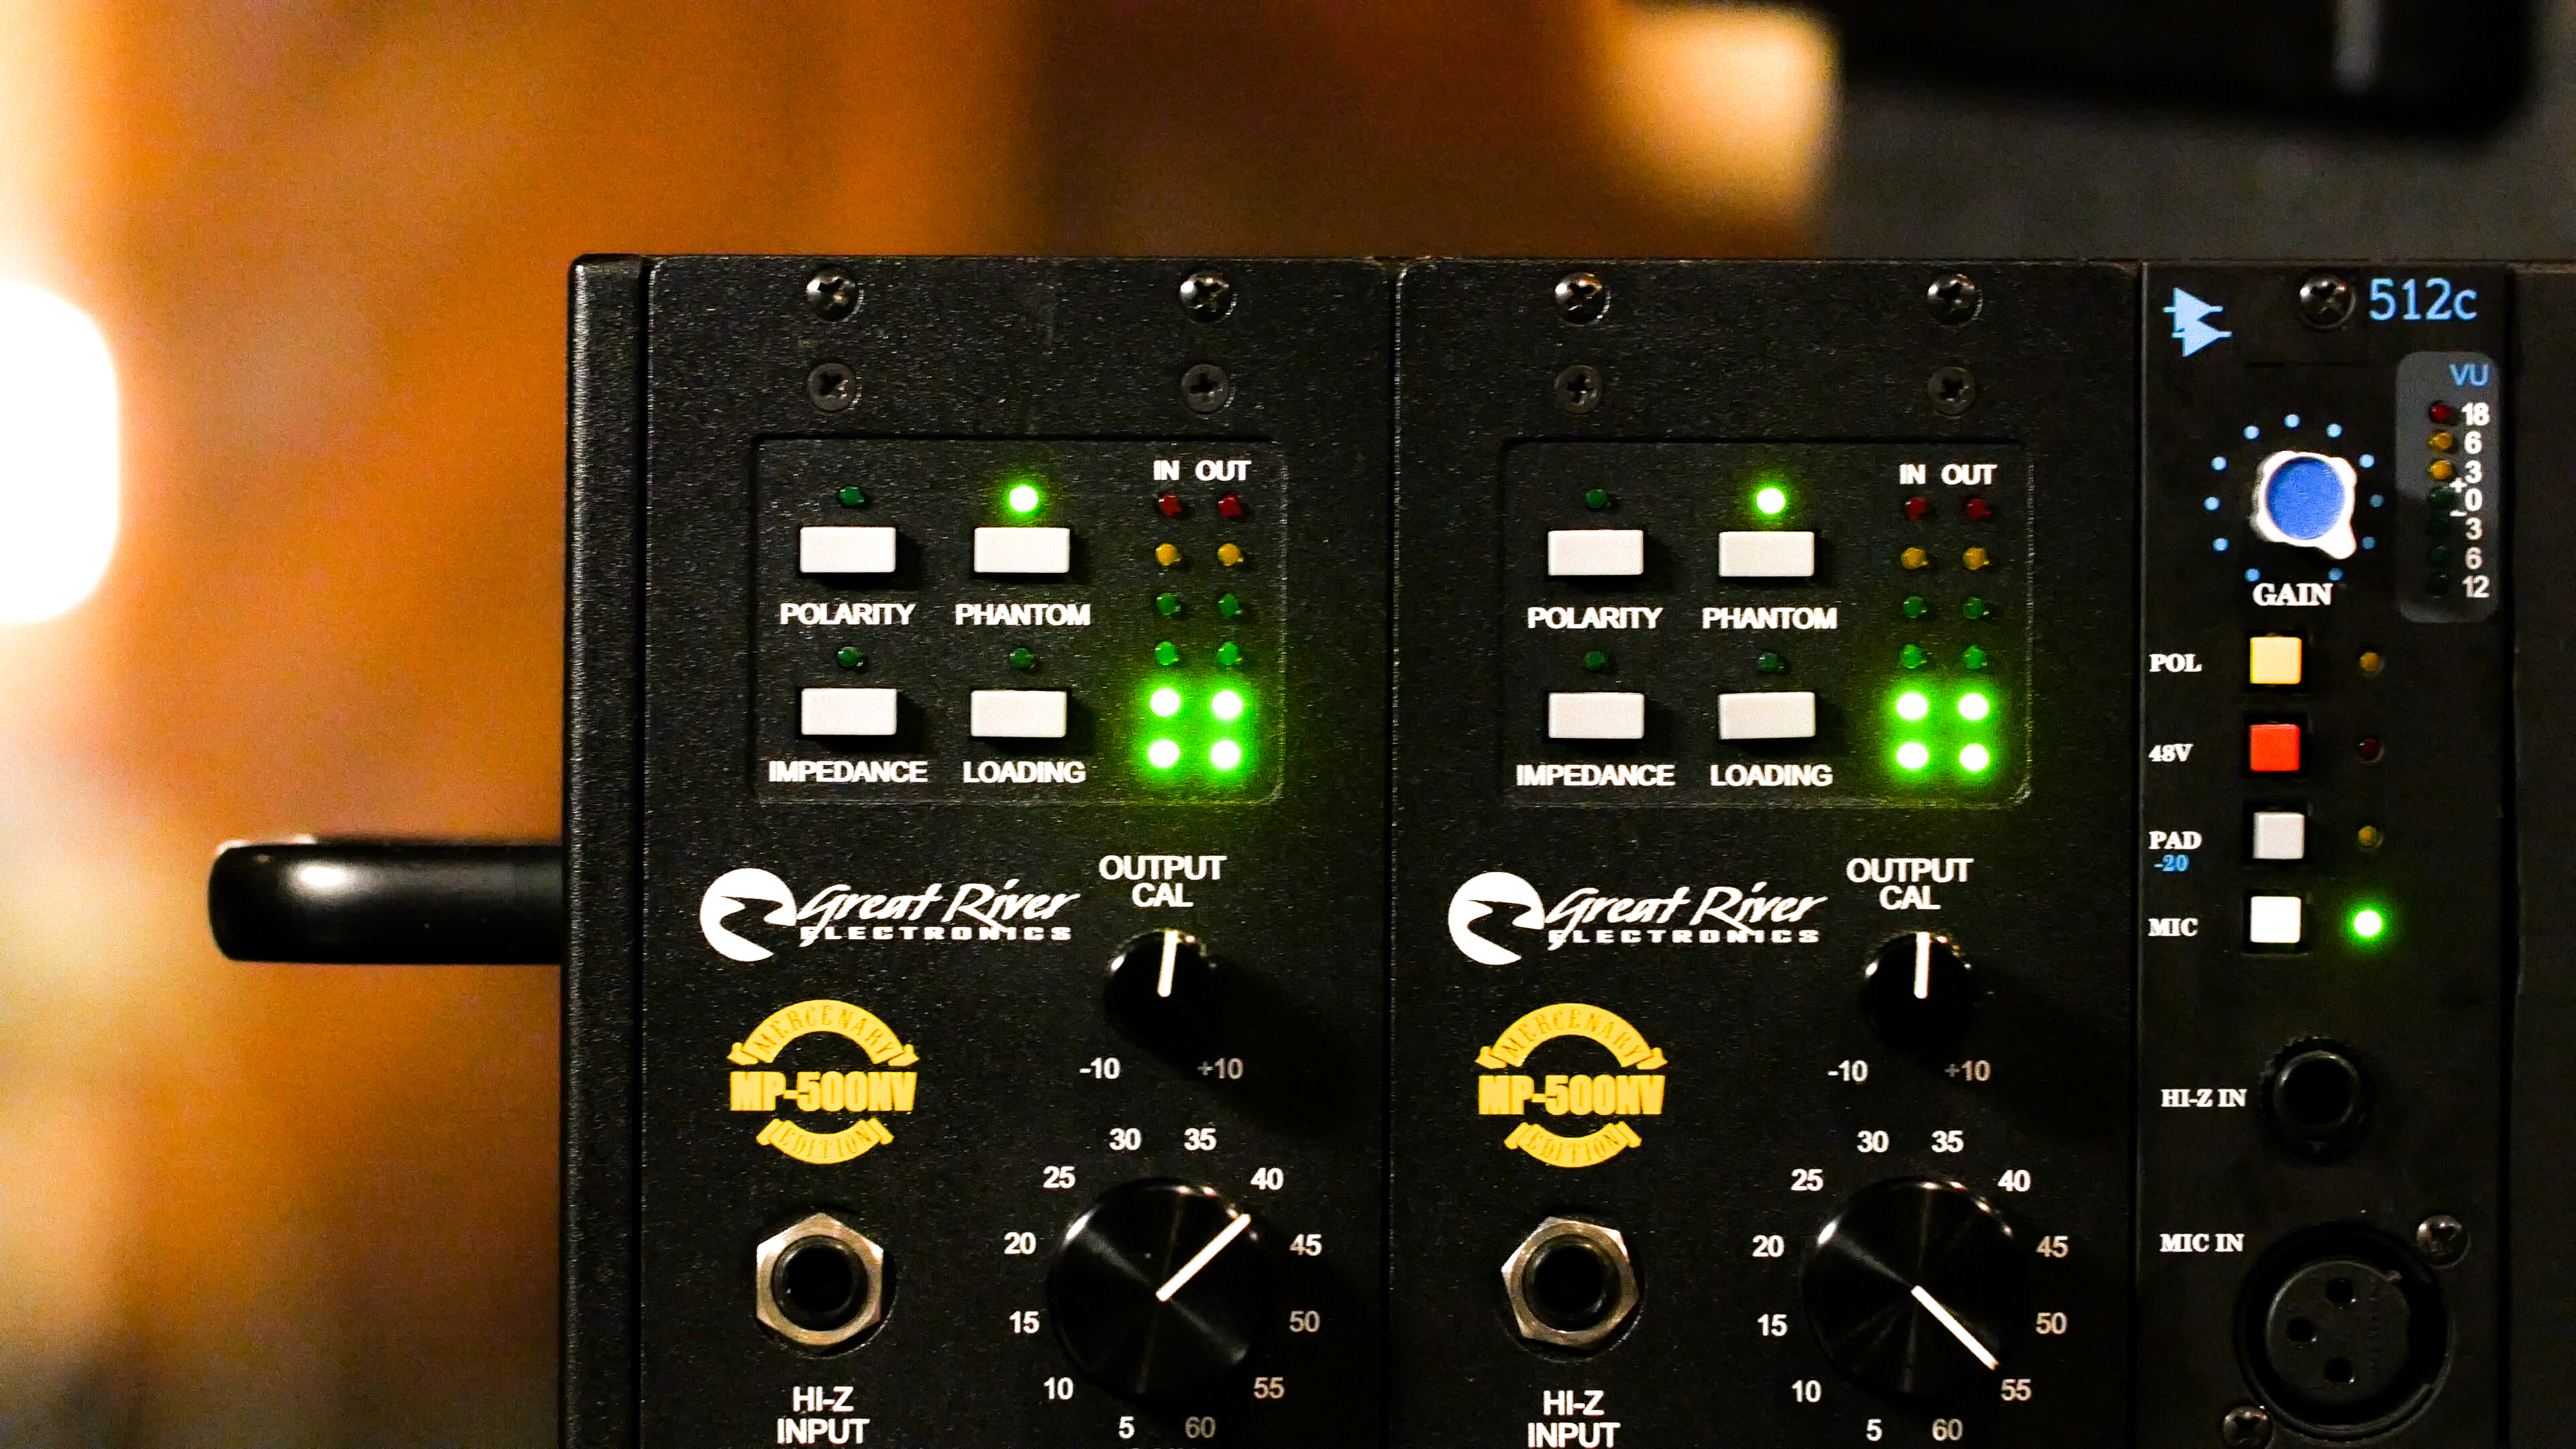 Great River MP-500NV Preamps